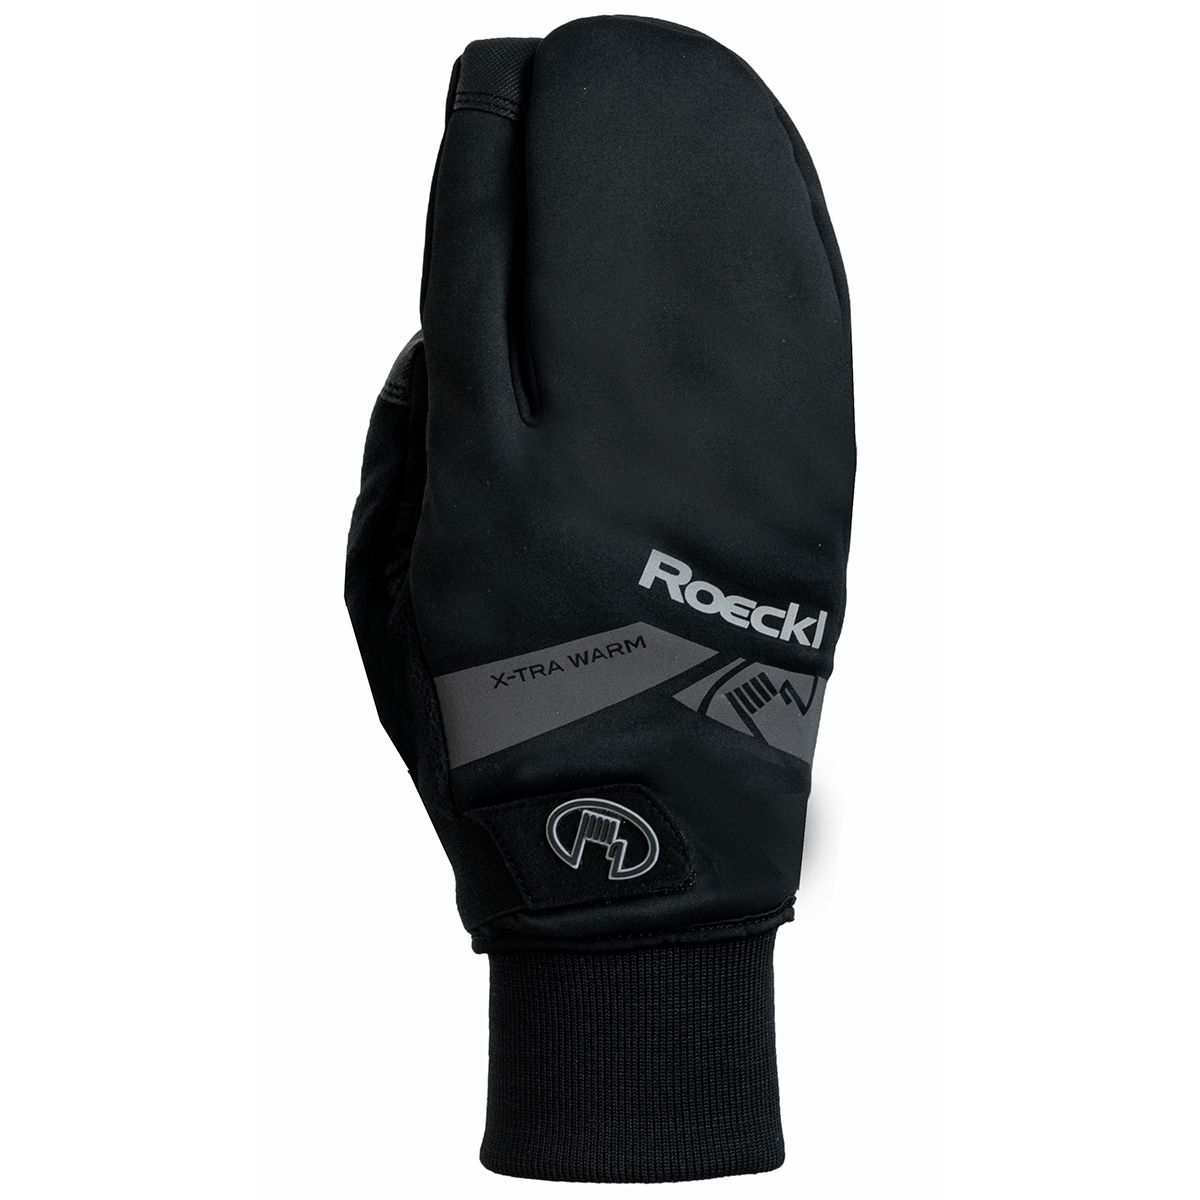 VILLACH TRIGGER Winter Cycling Gloves